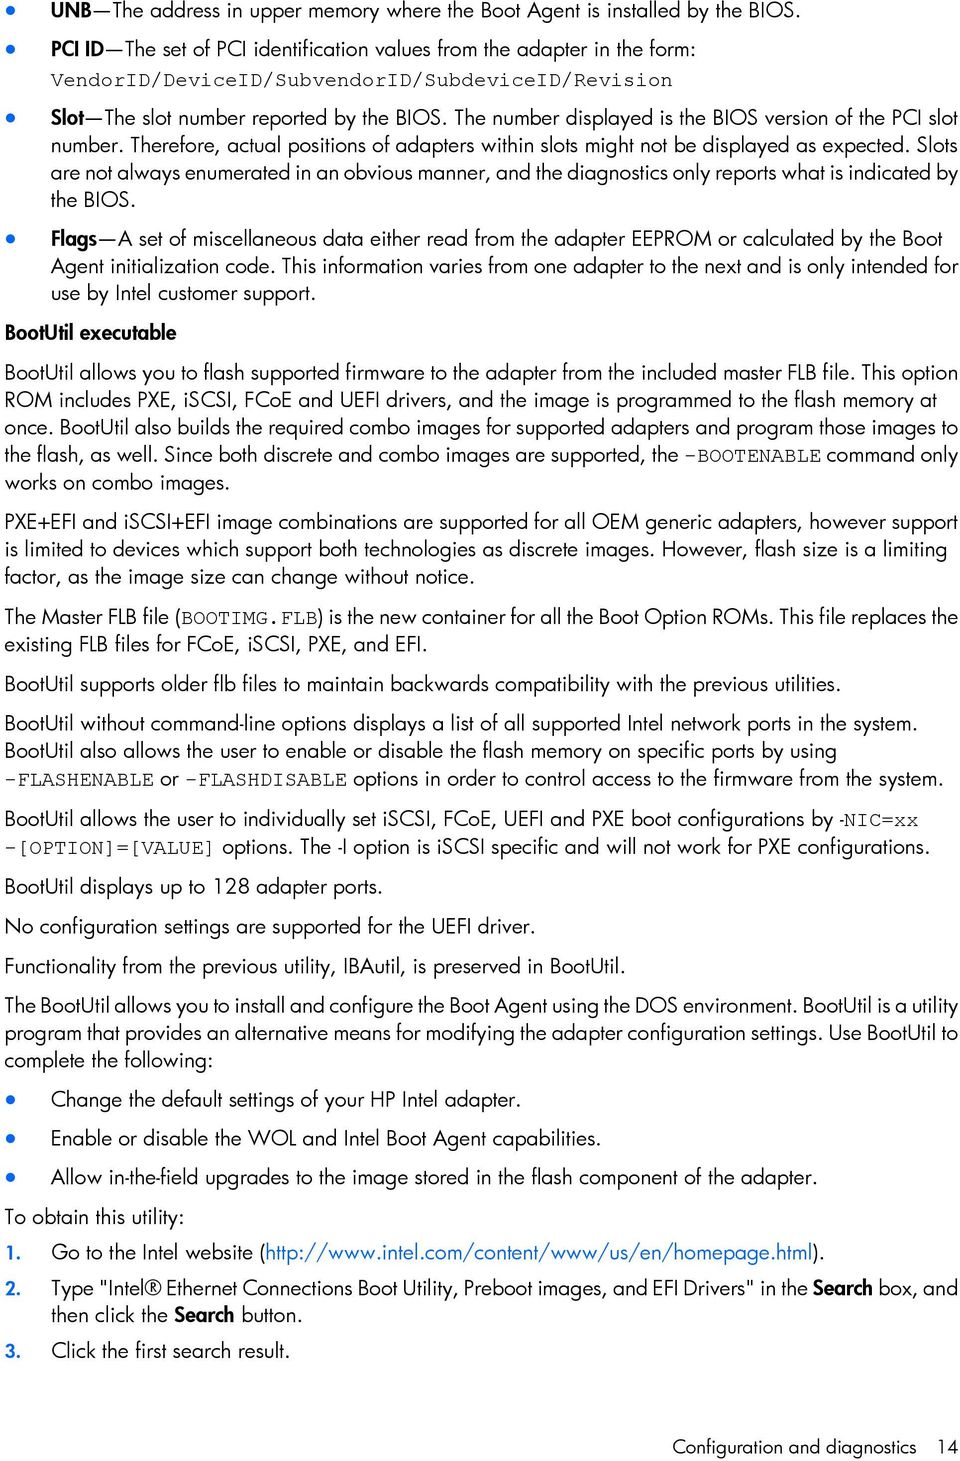 HP ProLiant Network Adapter Software and Configuration Guide